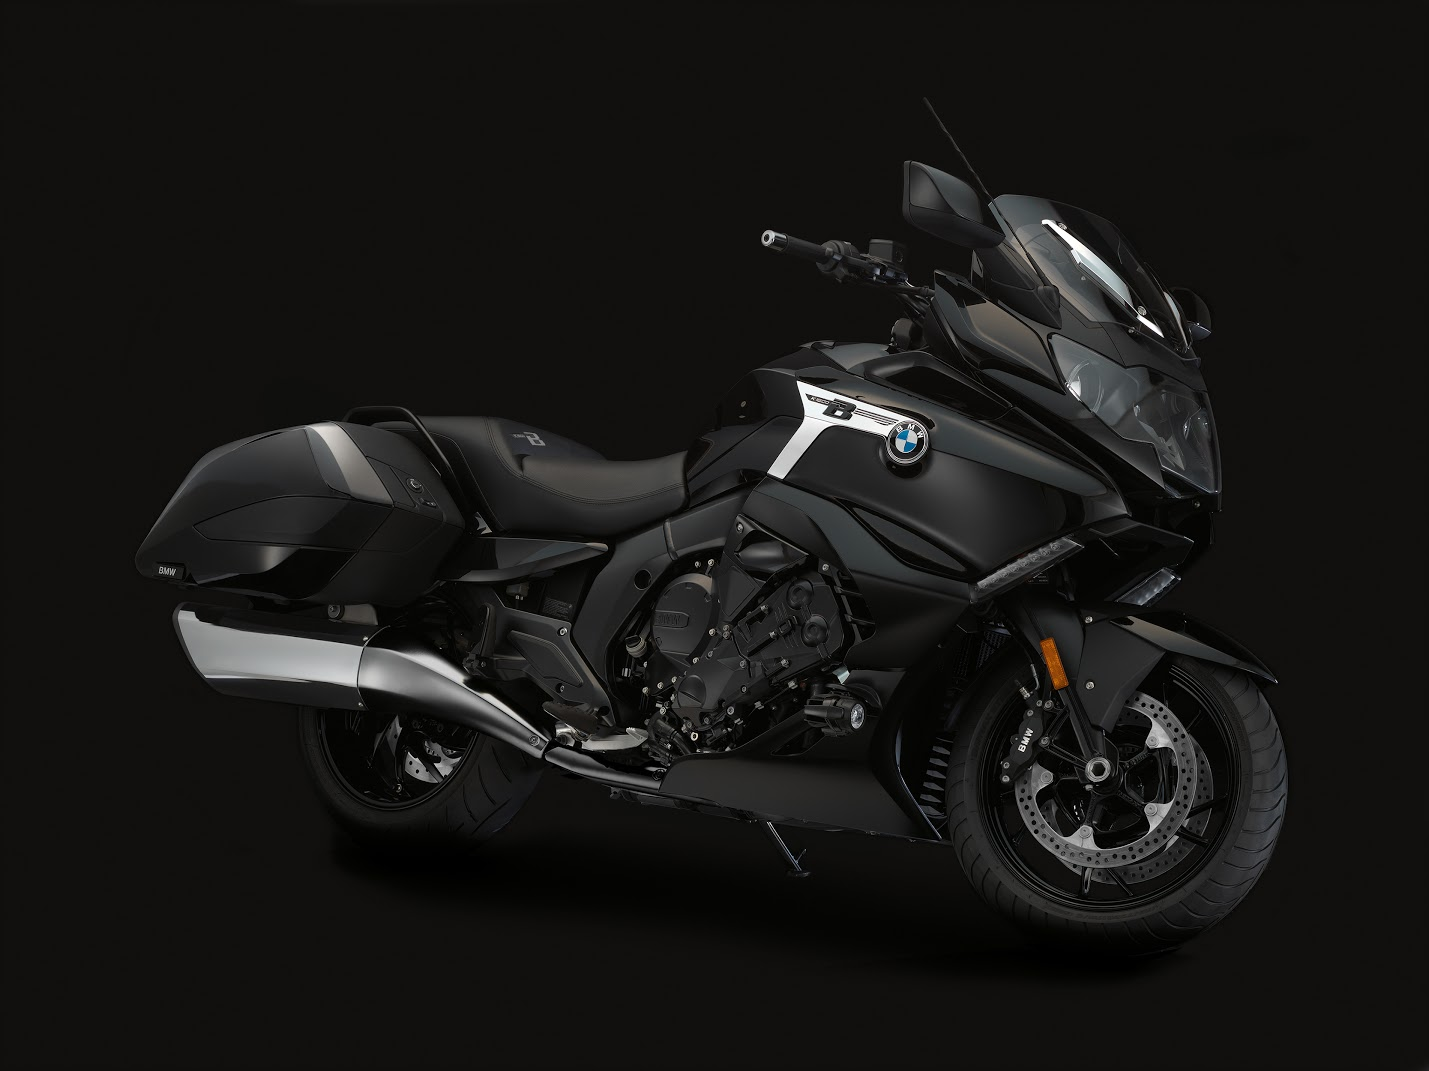 BMW to Offer Demo Rides on New Bagger Exclusively at the Sturgis Buffalo Chip®